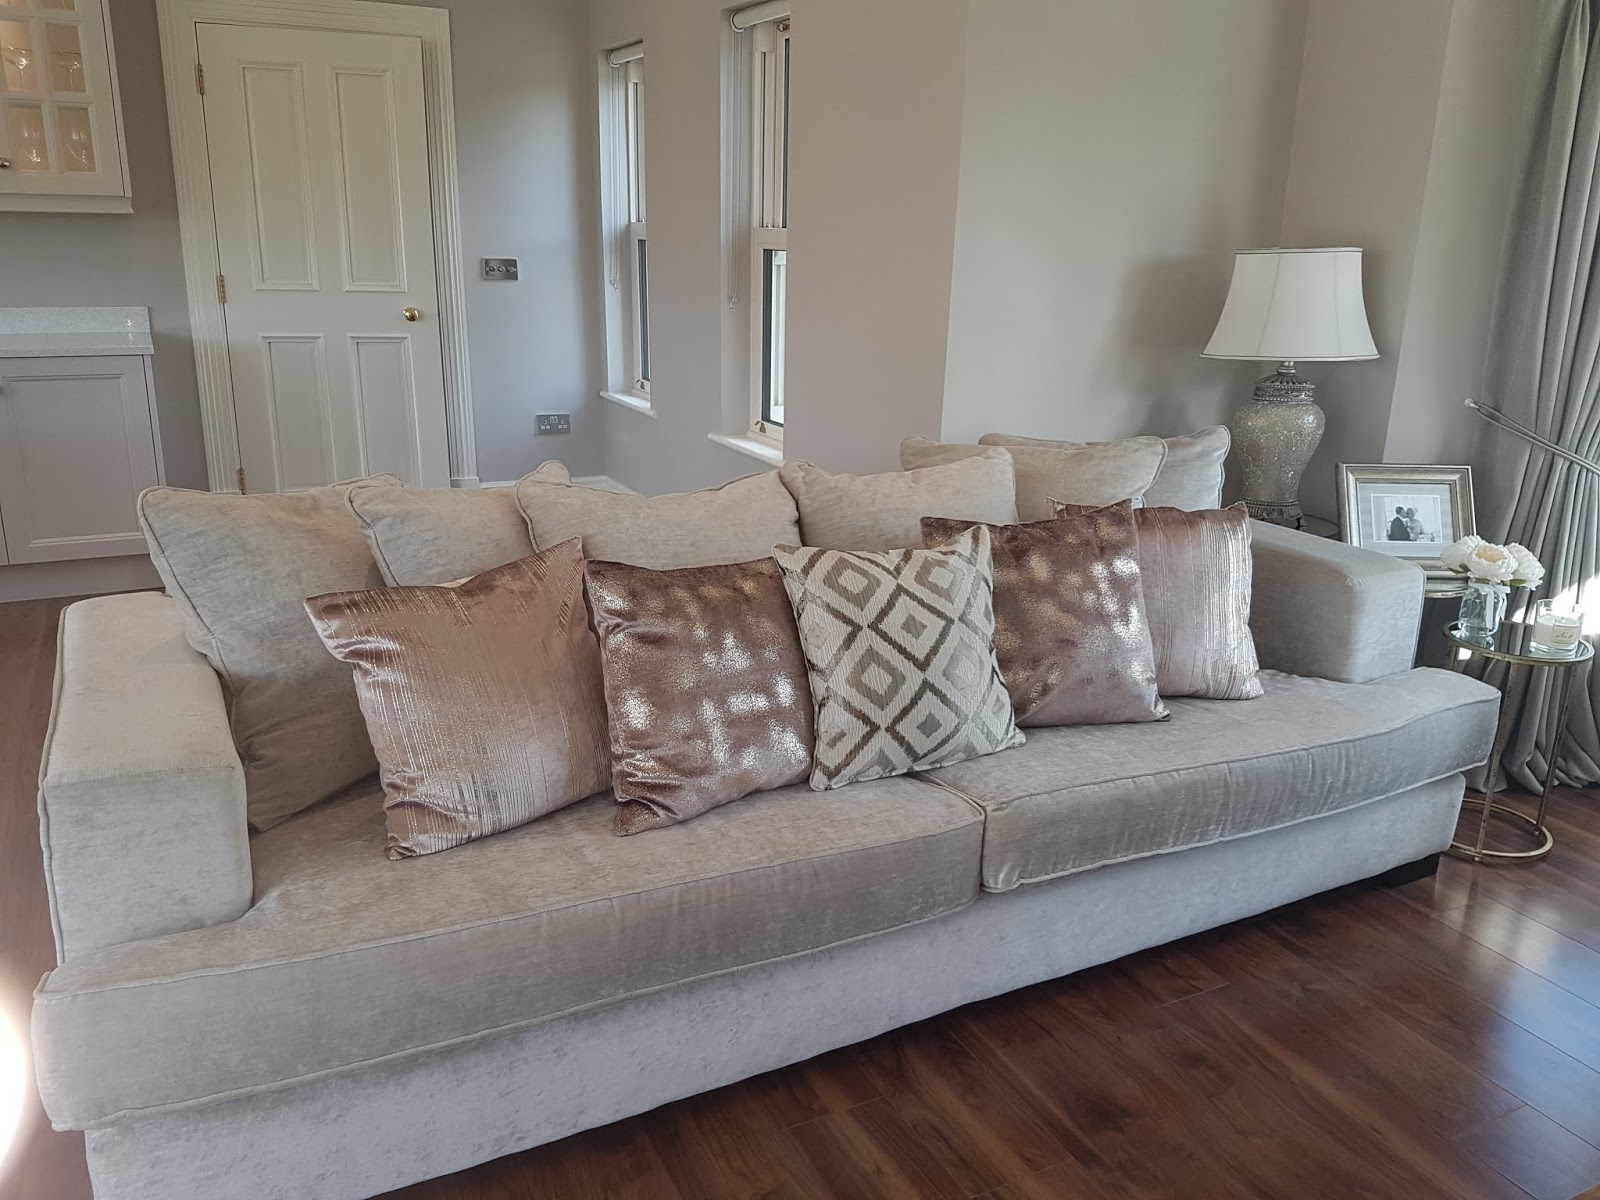 pictures of grey living room furniture small layouts with tv interior edit my the style flamingos i wanted to keep cream tones so went this light velvet fabric for suite know it is such a colour